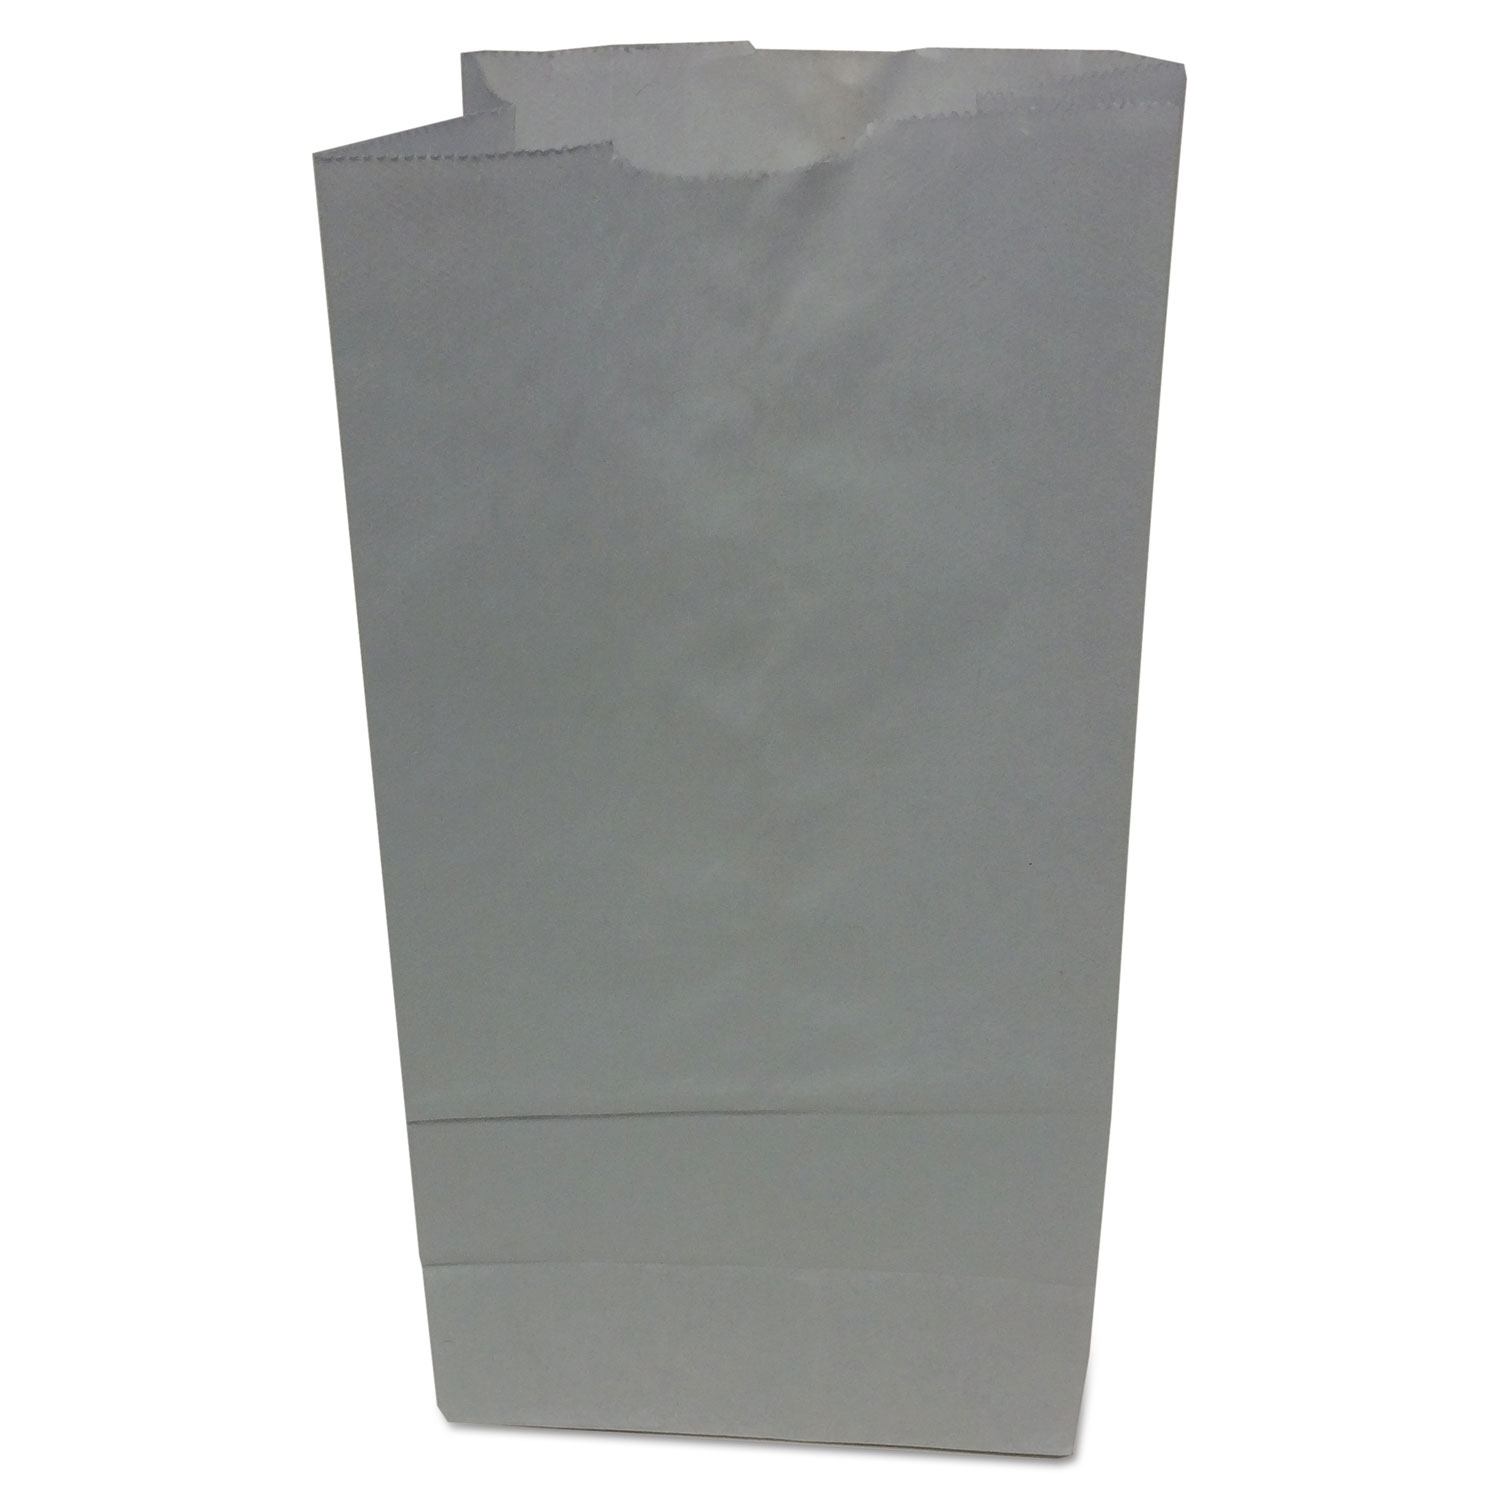 """Grocery Paper Bags, 35 lbs Capacity, #5, 5.25""""w x 3.44""""d x 10.94""""h, White, 500 Bags BAGGW5500"""